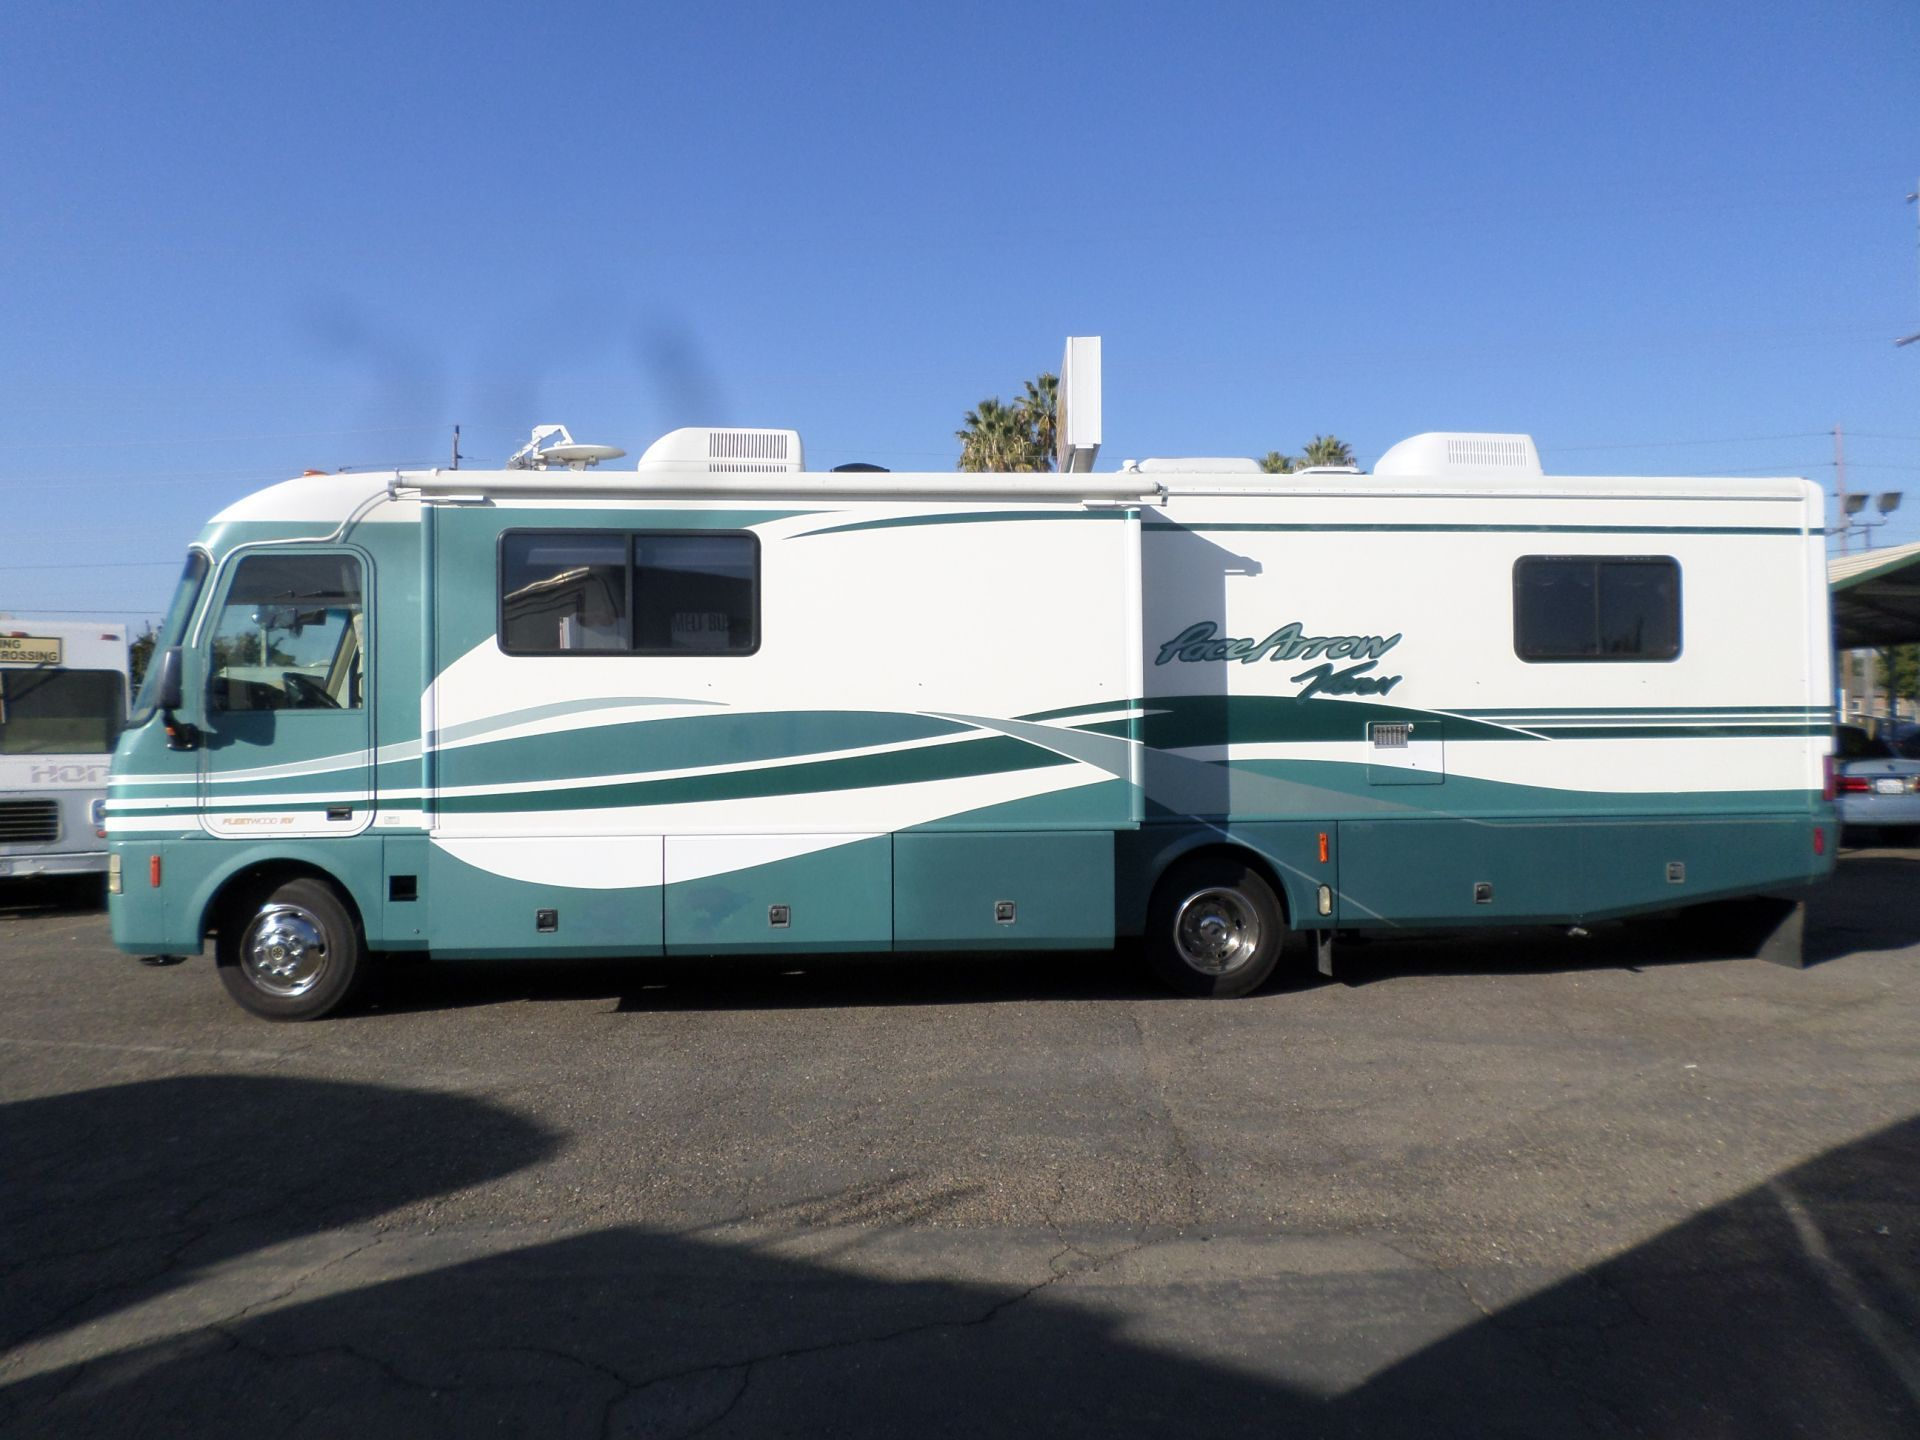 Rv For Sale 2000 Fleetwood Pace Arrow Vision 34 In Lodi Stockton Ca Rv For Sale Fast Sports Cars Used Rv For Sale